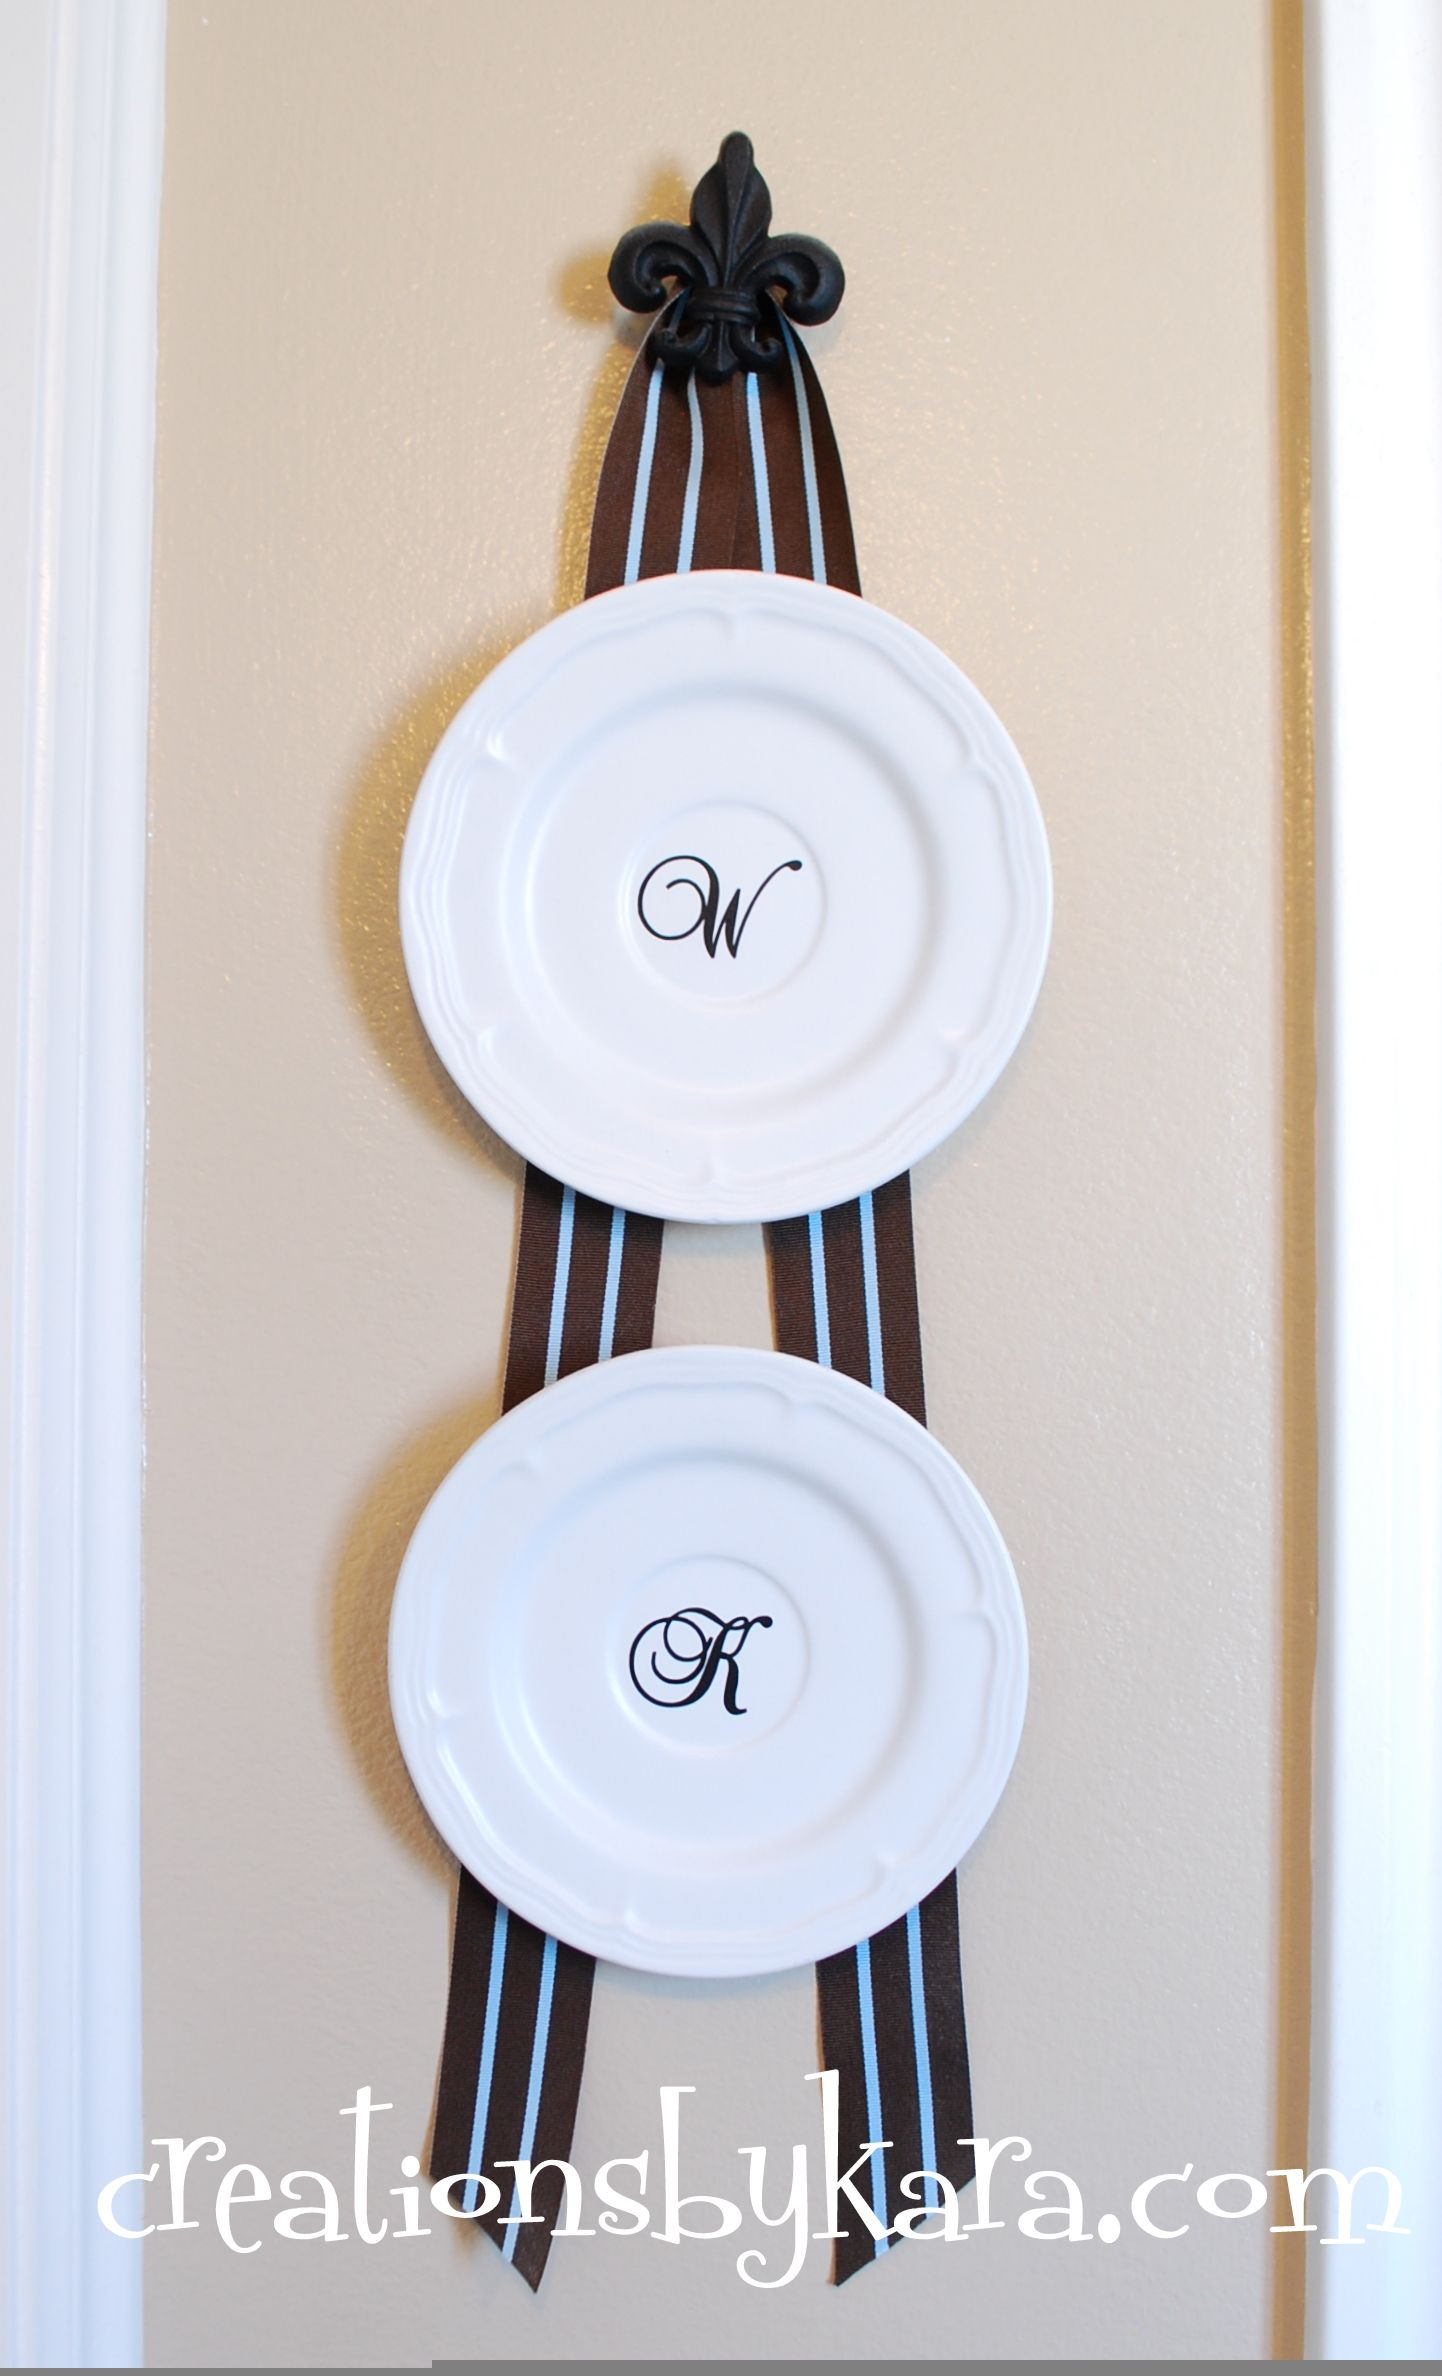 Wall Hangers For Plates Glamorous How To Hang Plates On The Wall Without Buying Plate Hangersa Quick Decorating Inspiration